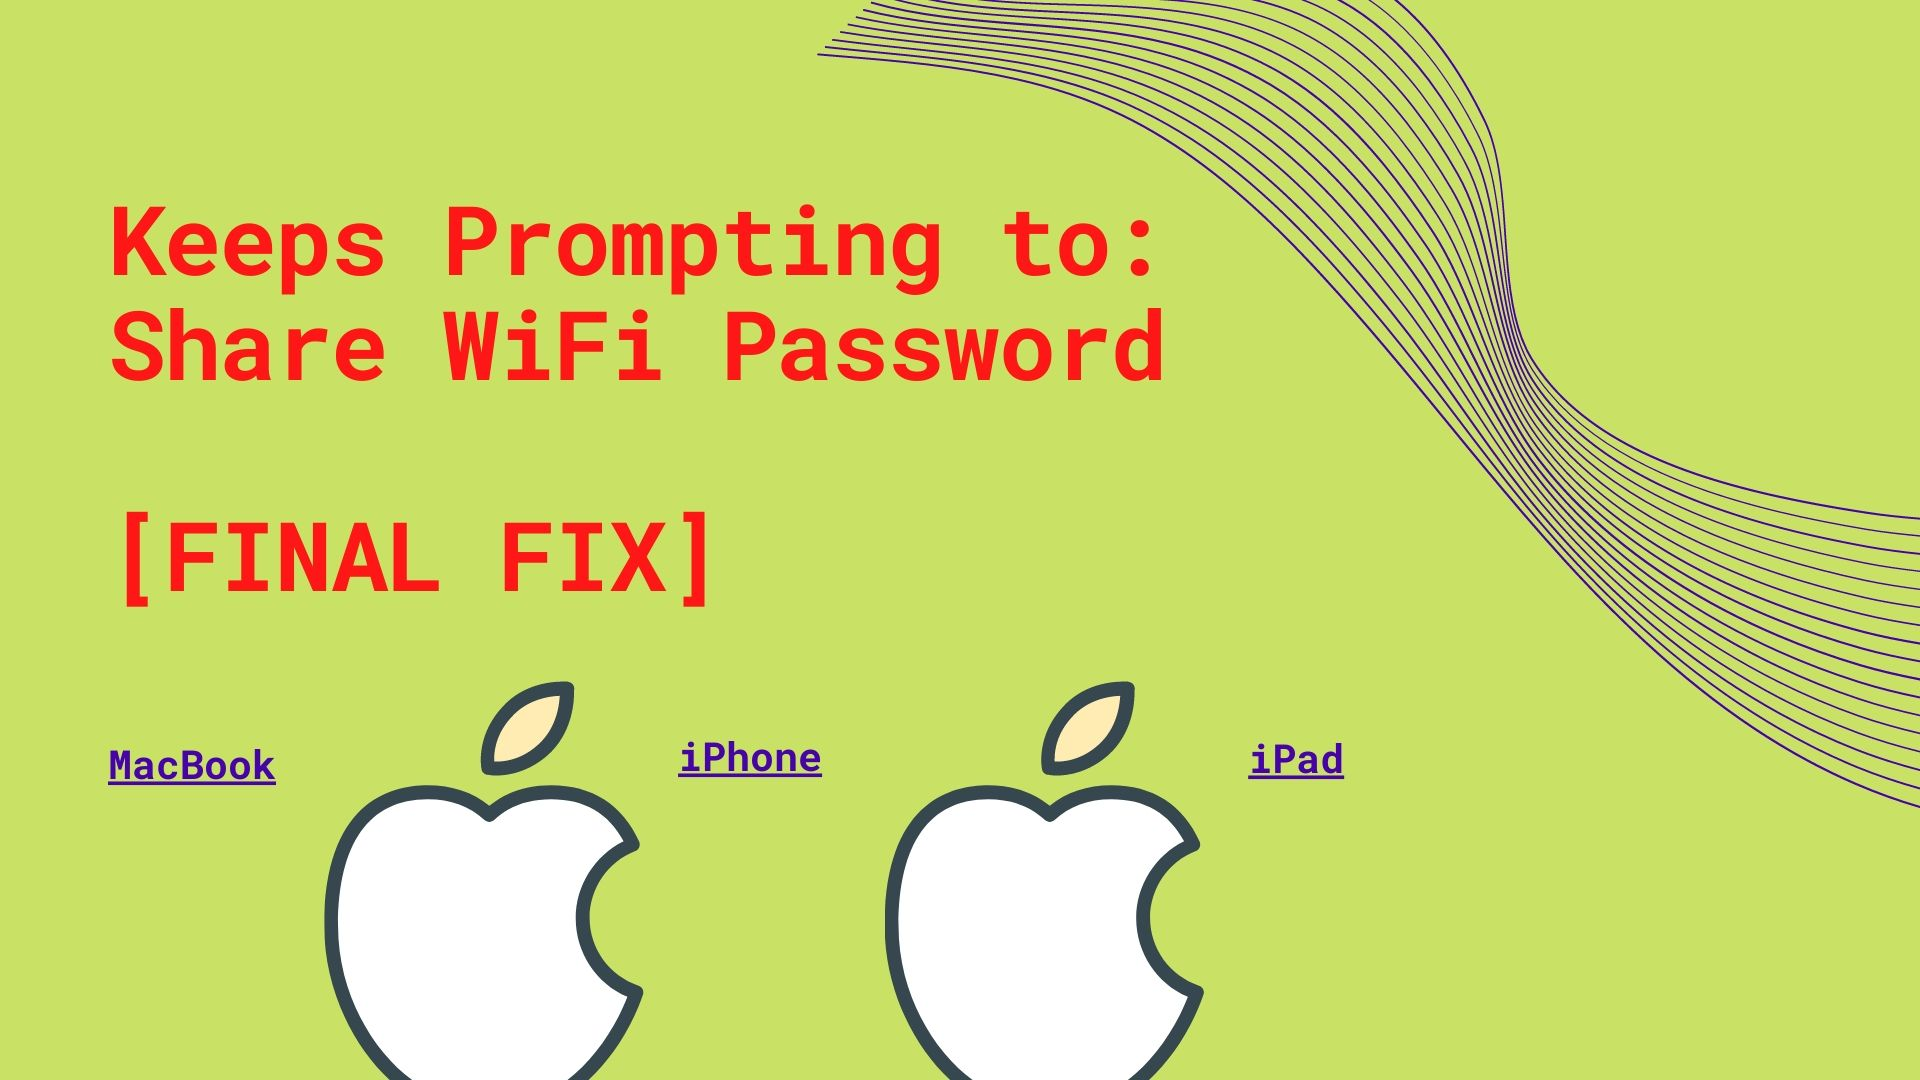 Keeps Prompting to Share WiFi Password FIX